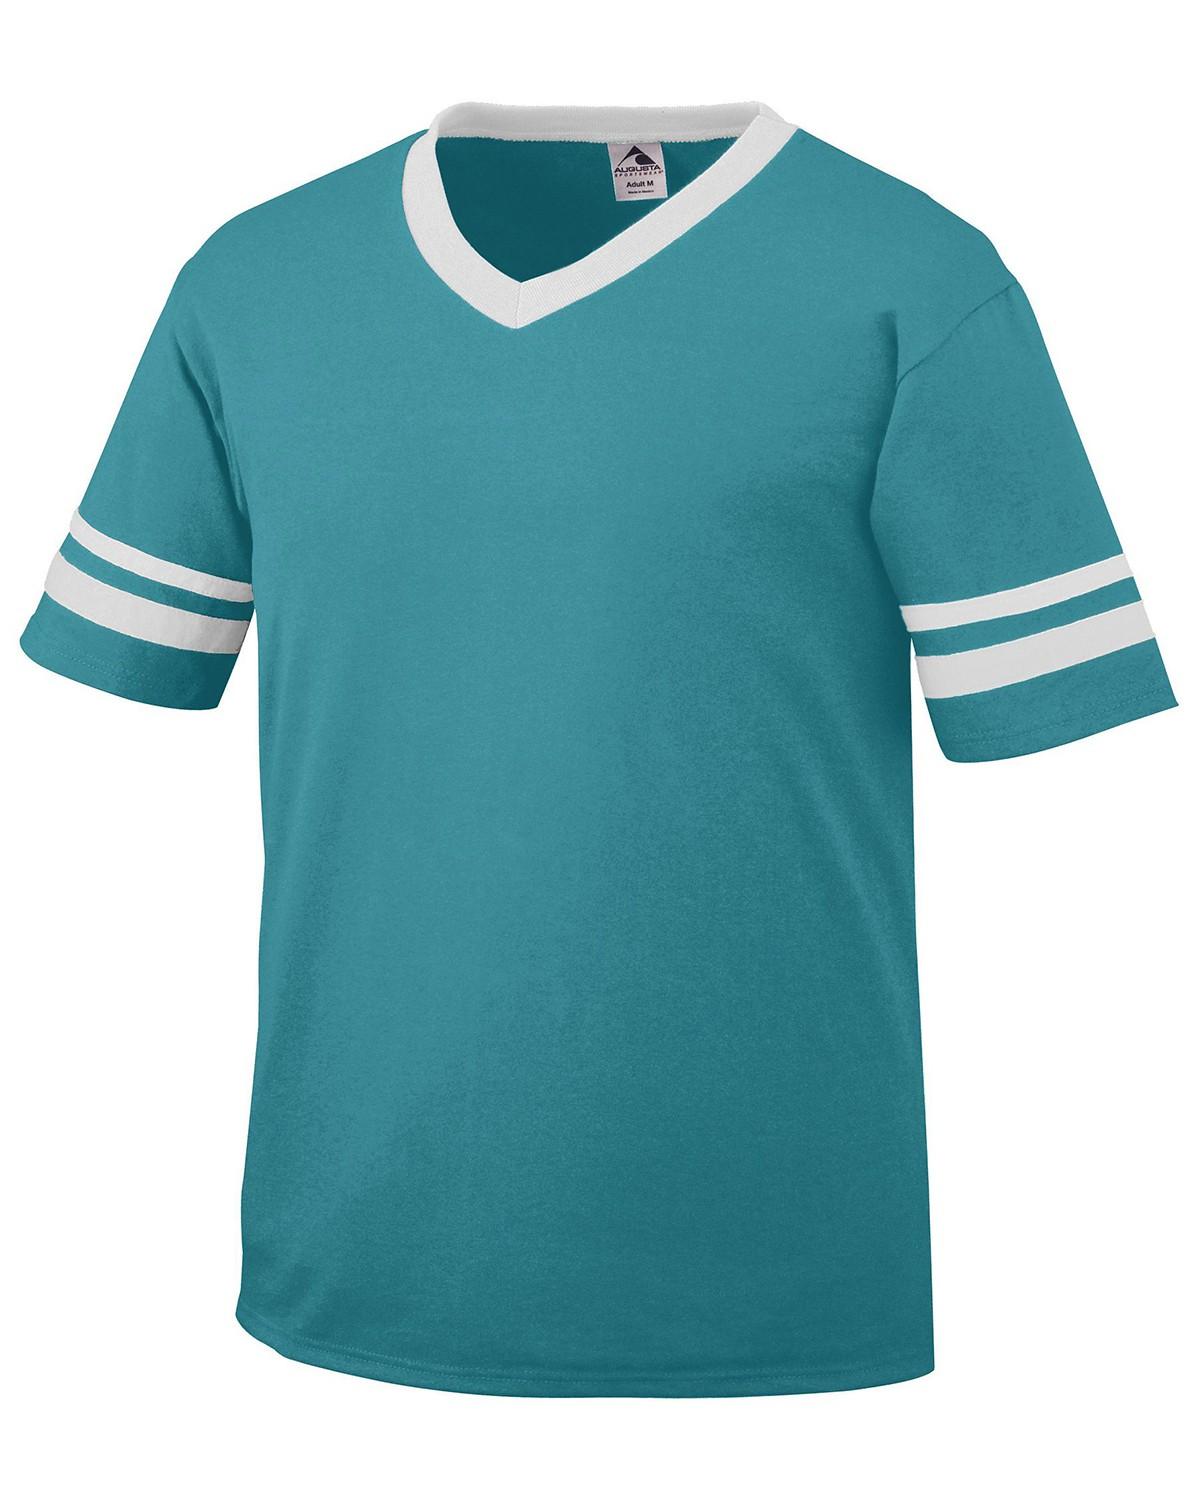 361 Augusta Drop Ship TEAL/WHITE